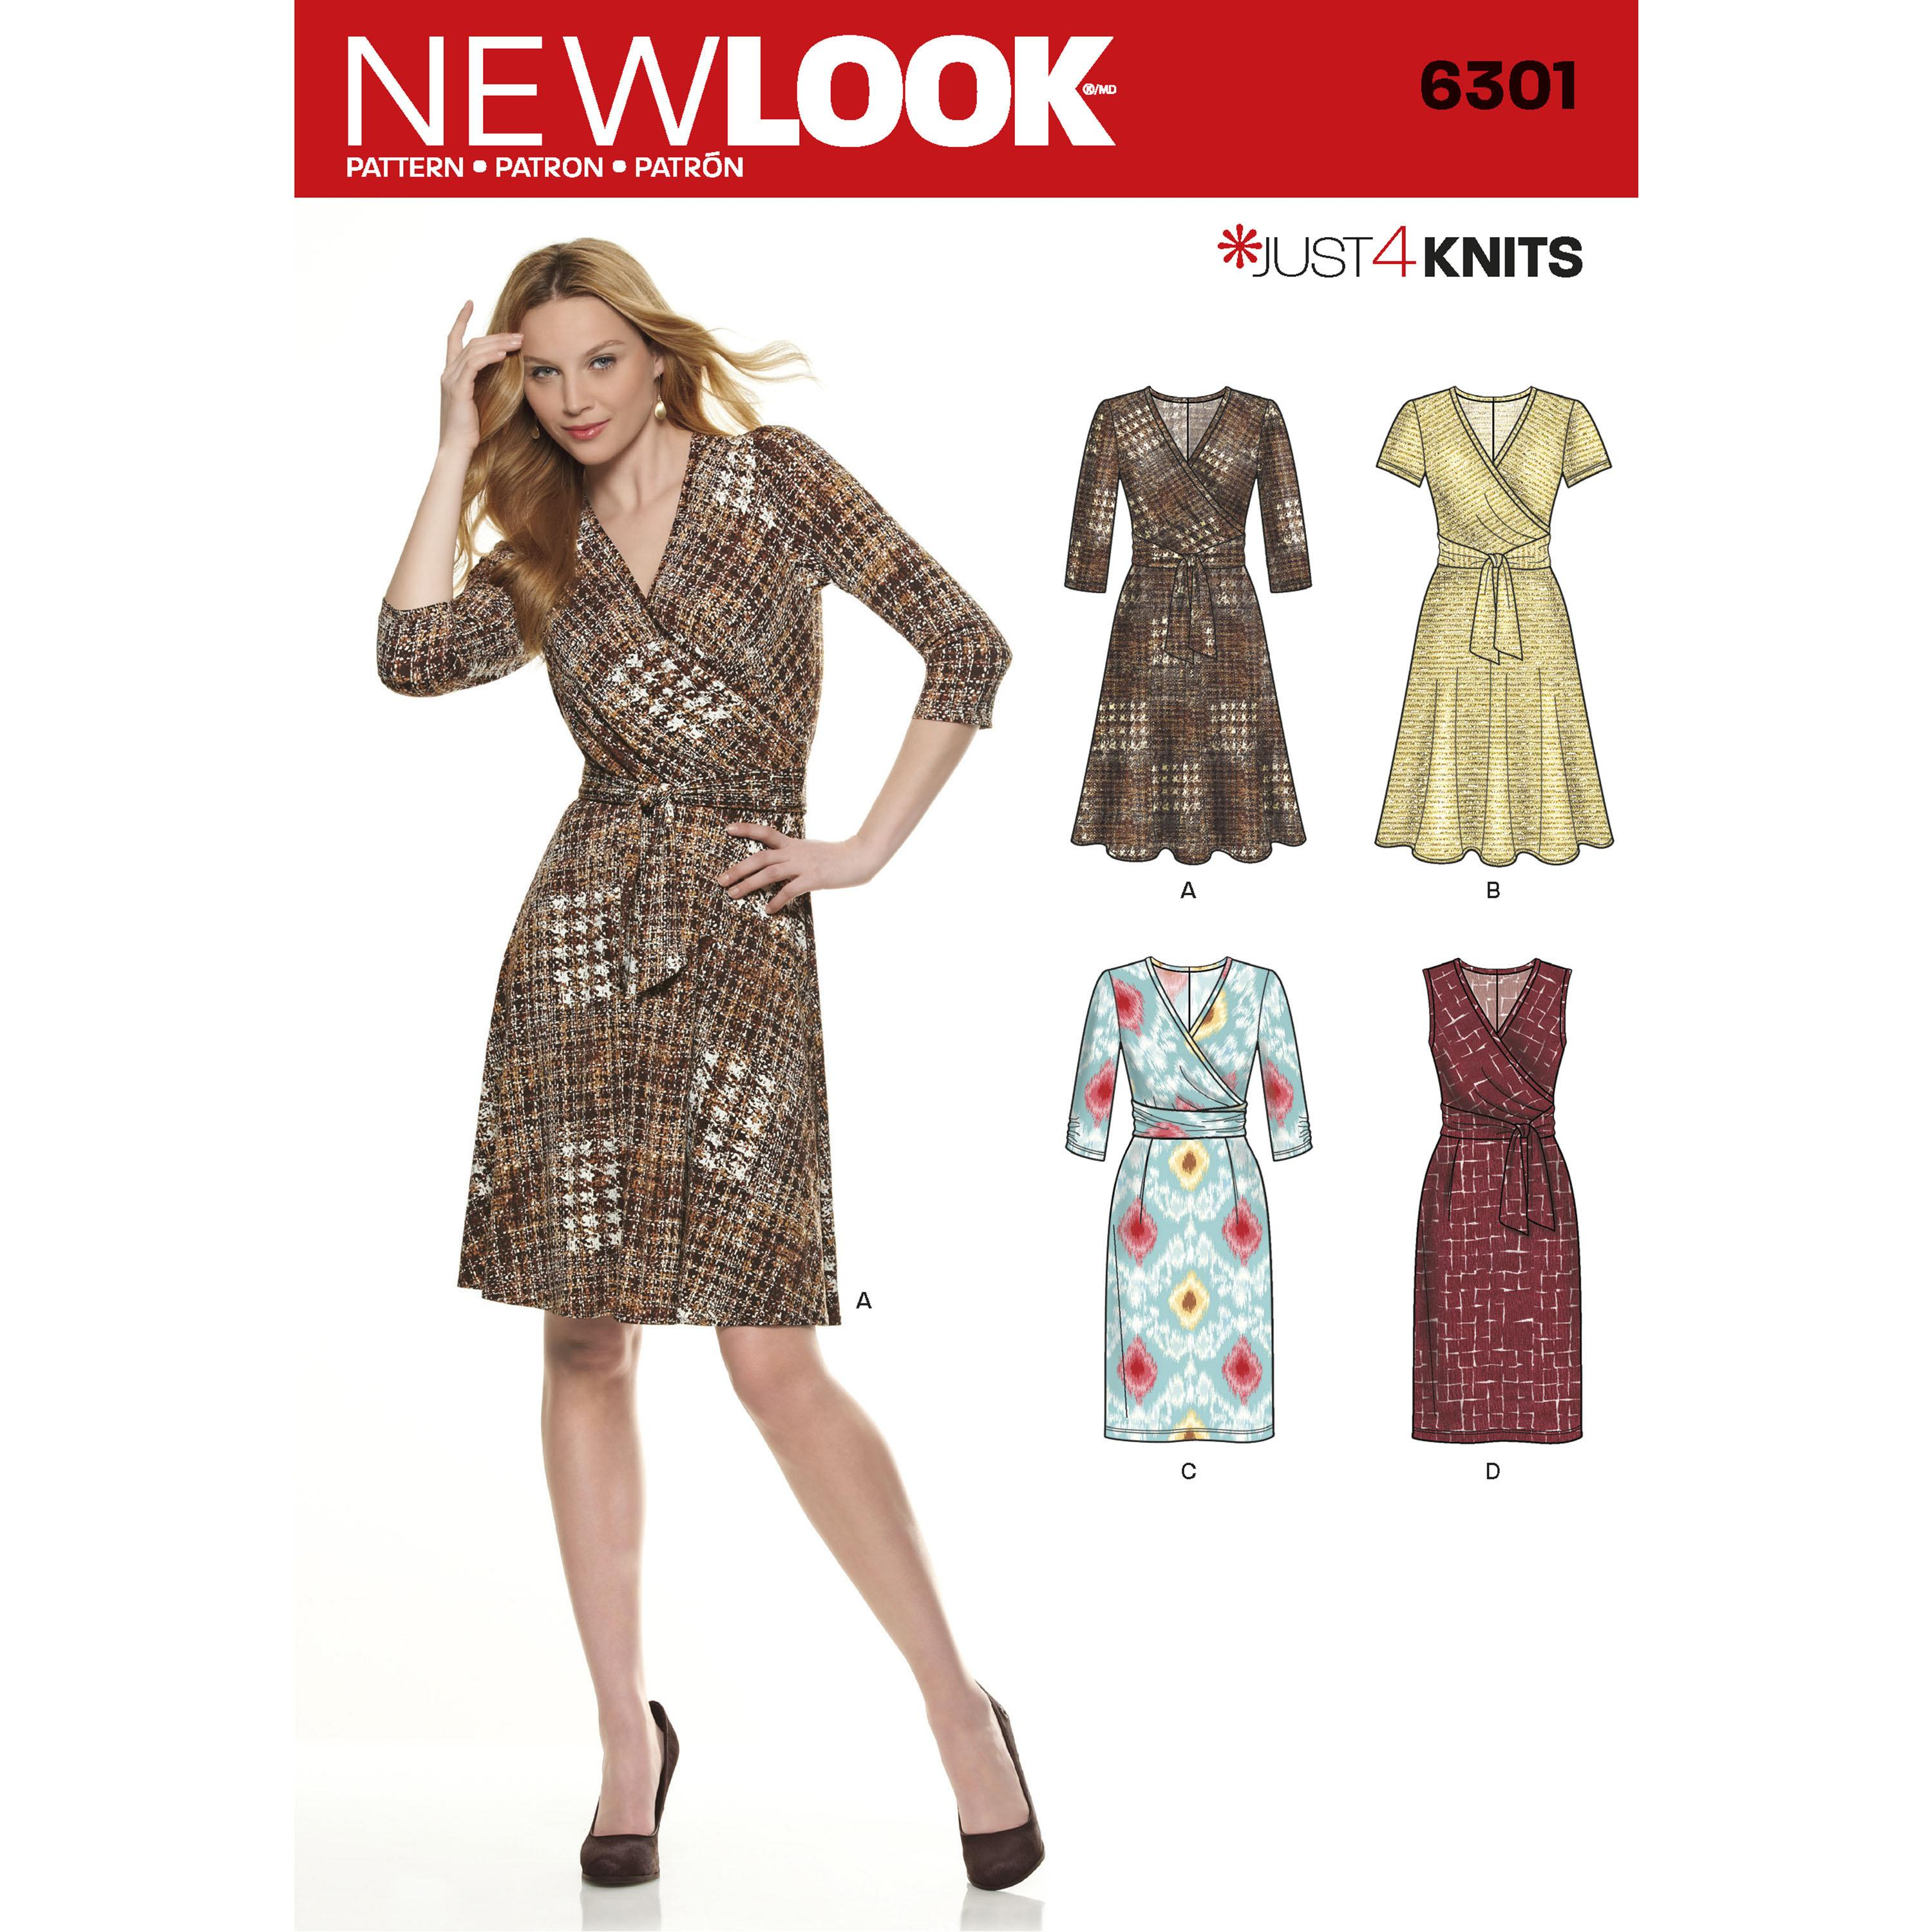 NewLook N6301 Misses' Mock Wrap Knit Dress